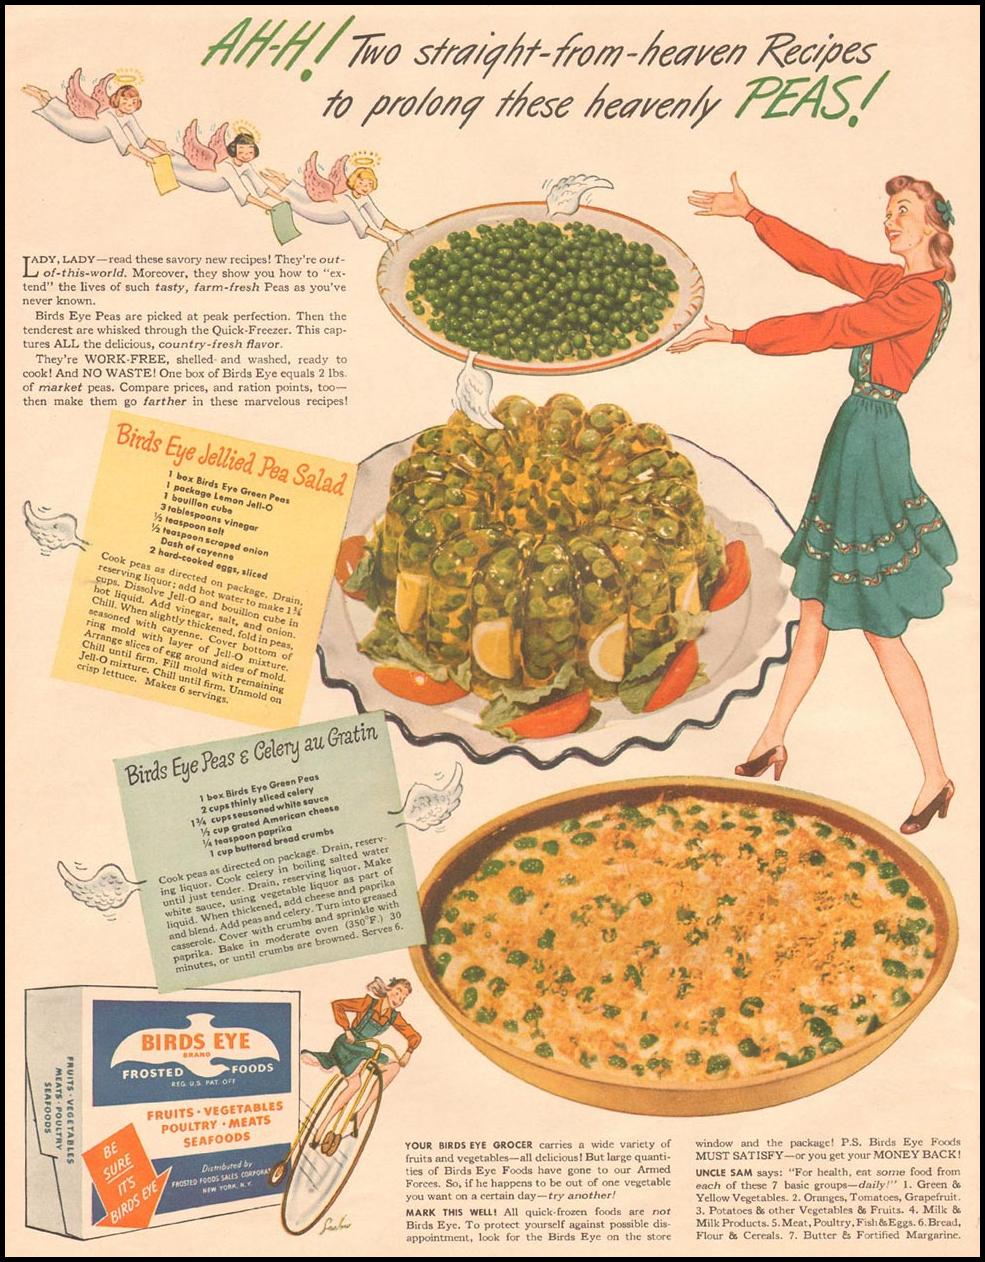 BIRDS EYE FROZEN FOODS LIFE 10/11/1943 p. 42